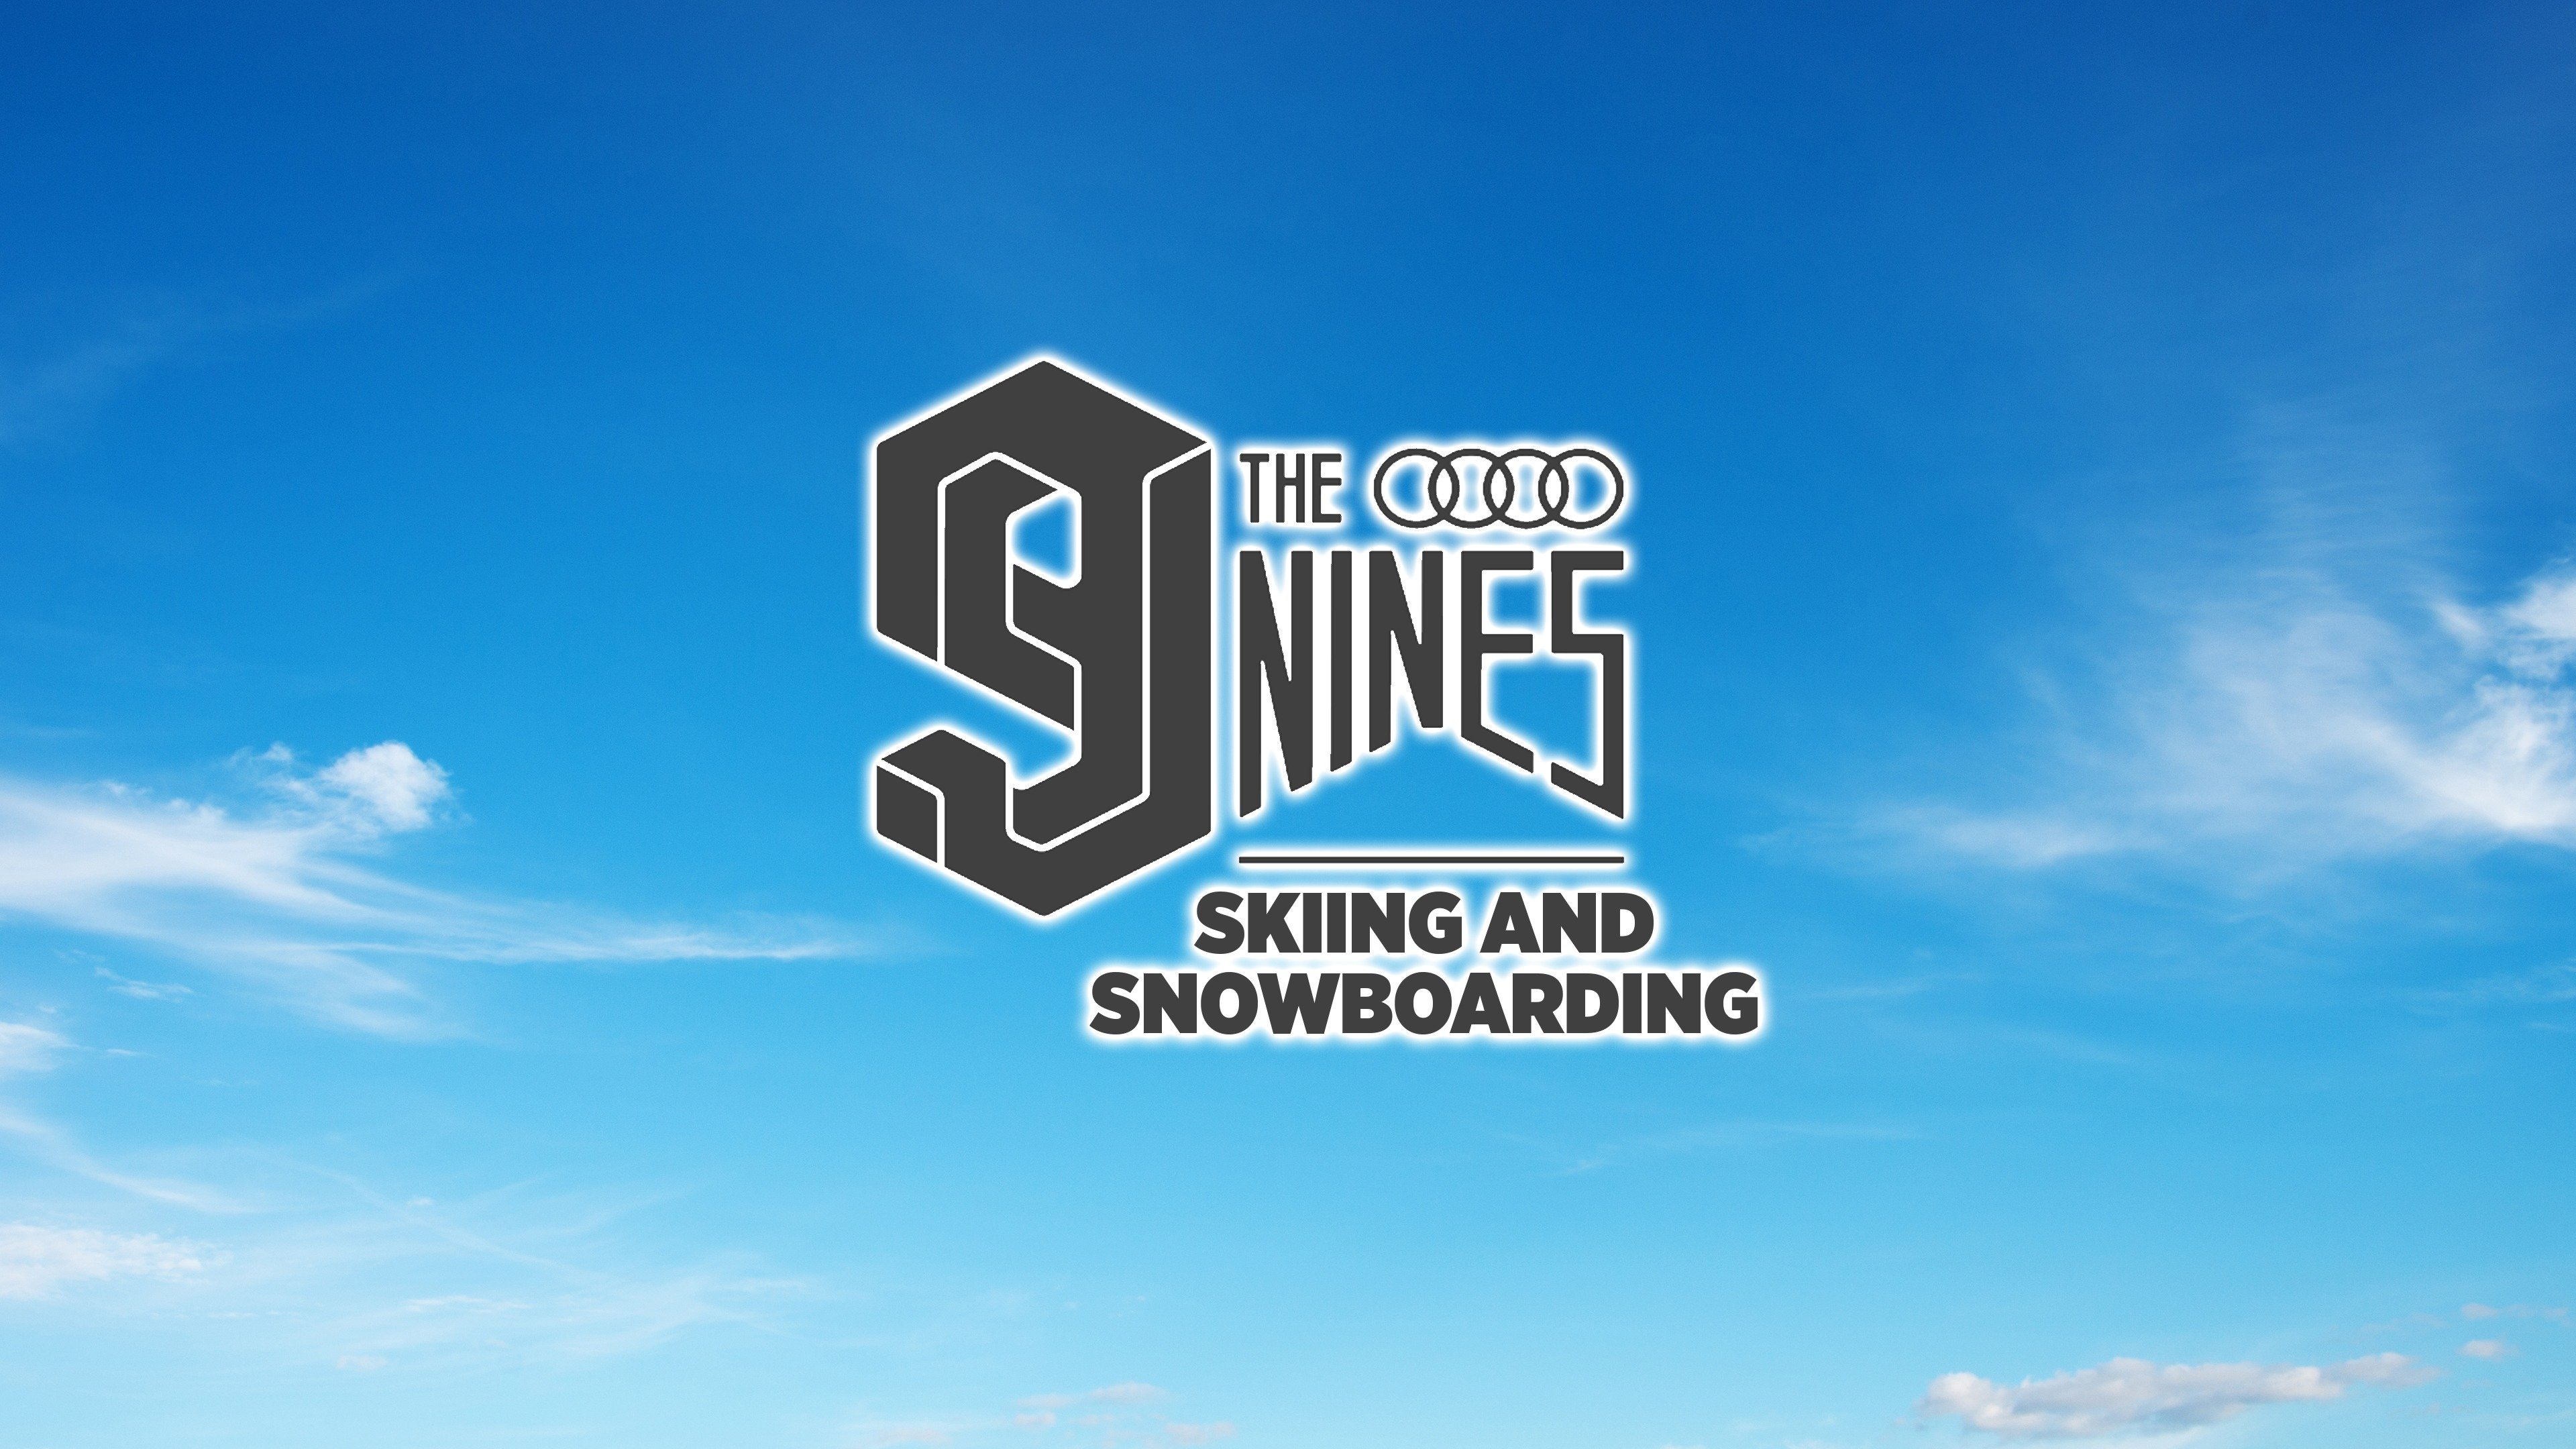 Audi Nines Skiing and Snowboarding